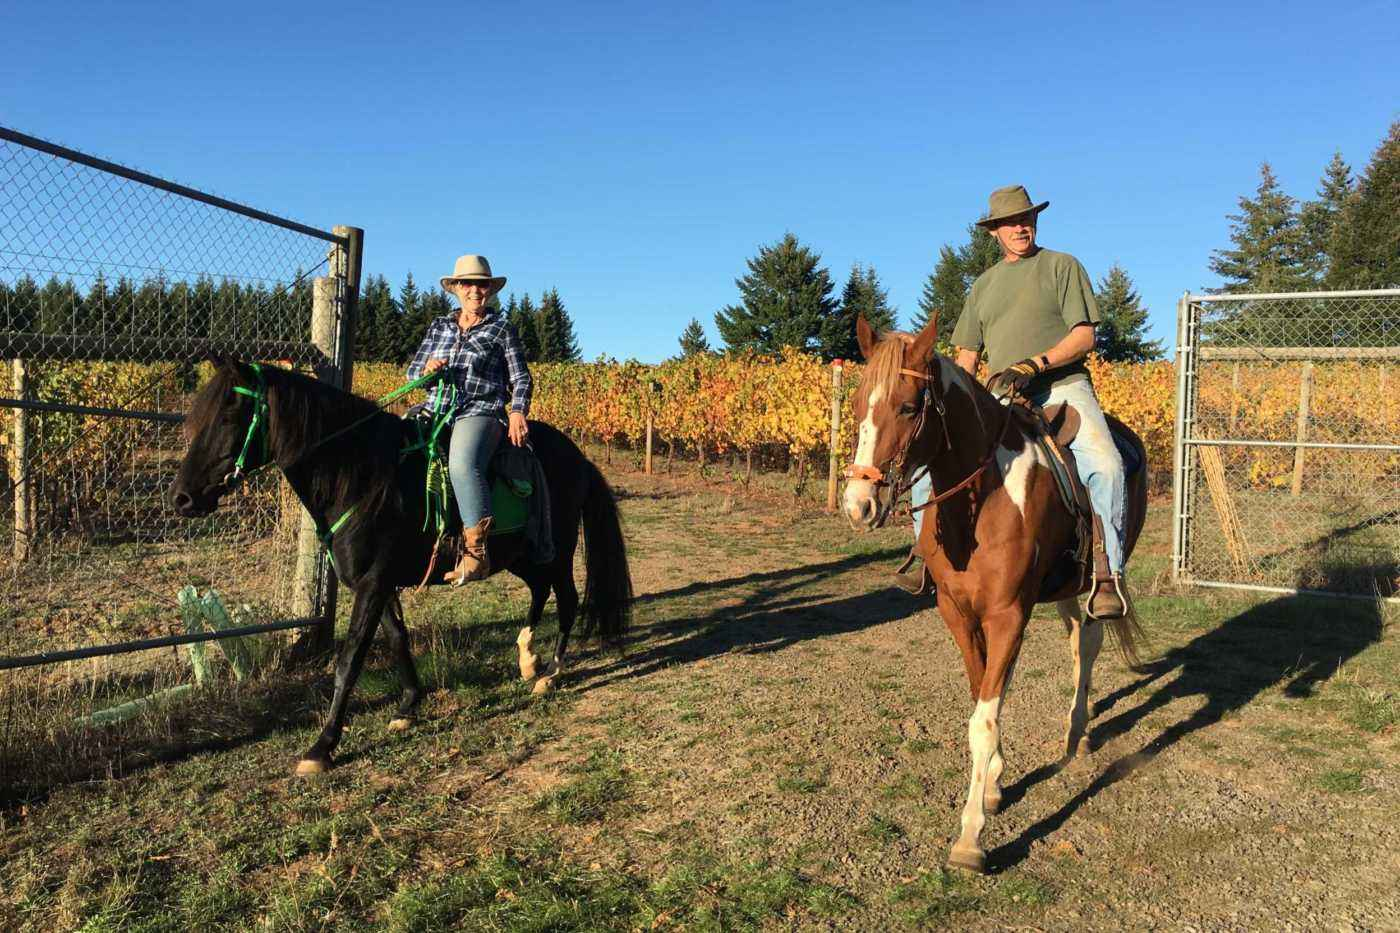 Guests make a visit to the vineyard on horseback